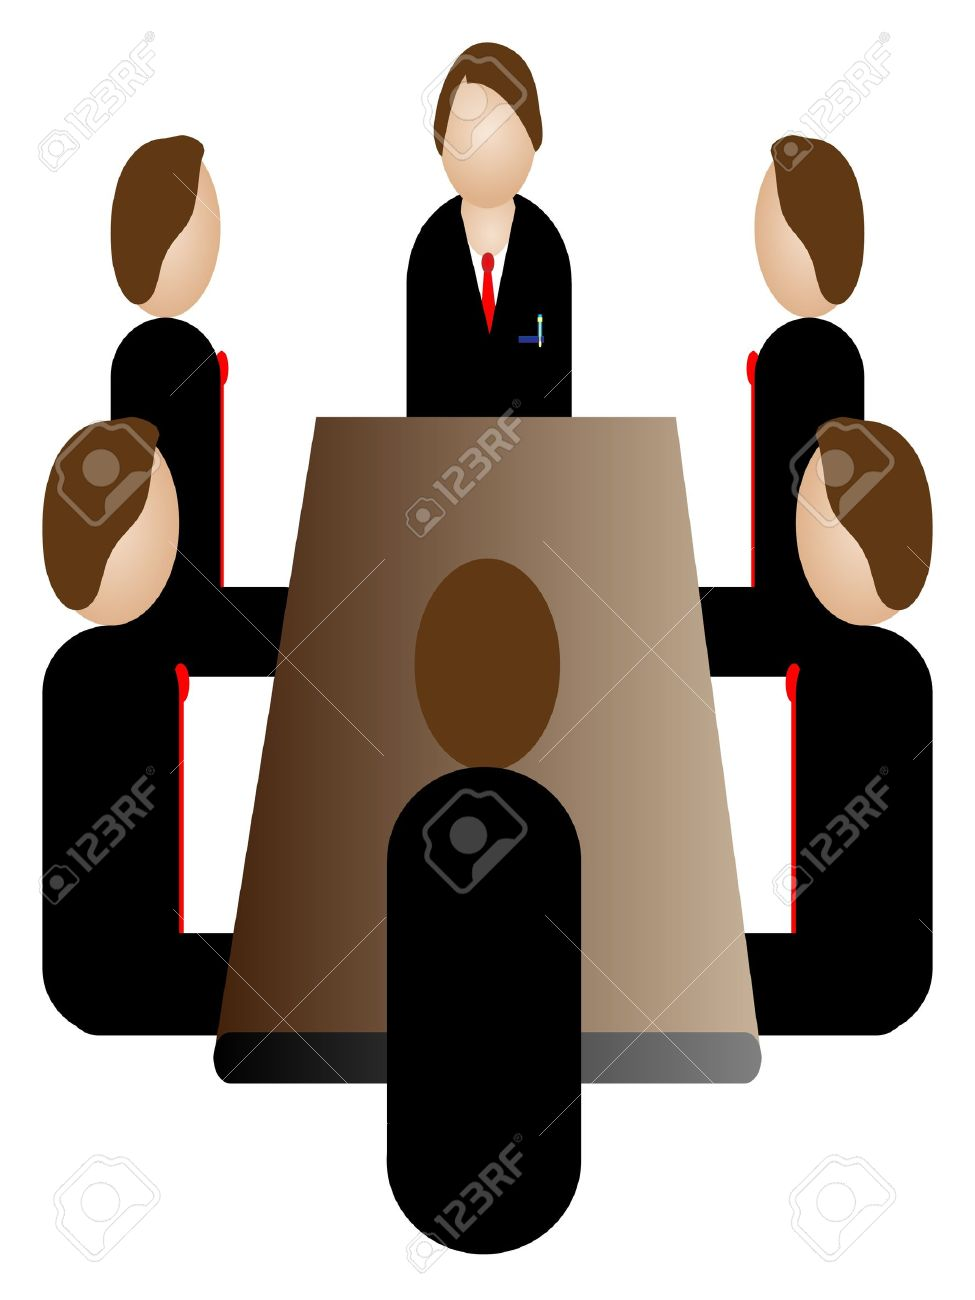 15,247 Business Lunch Stock Vector Illustration And Royalty Free.